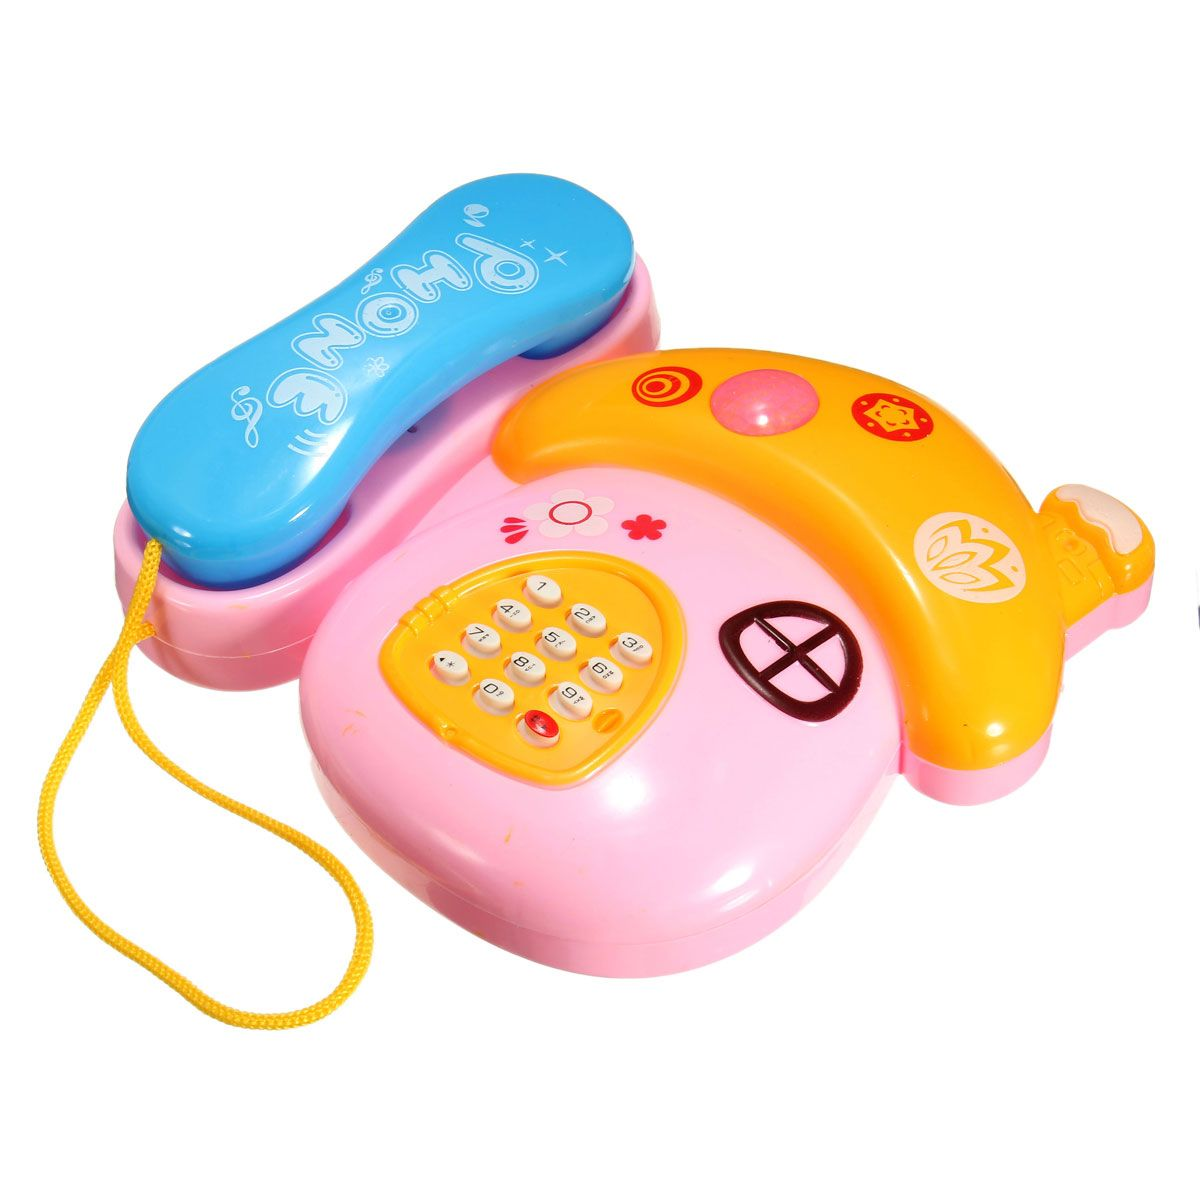 Fashion Electronic Musical Phone Interactive Mobile Talking Learning Sound Children Kid Baby Early Education Toy Inf Baby Toys Electronic Toys Educational Toys